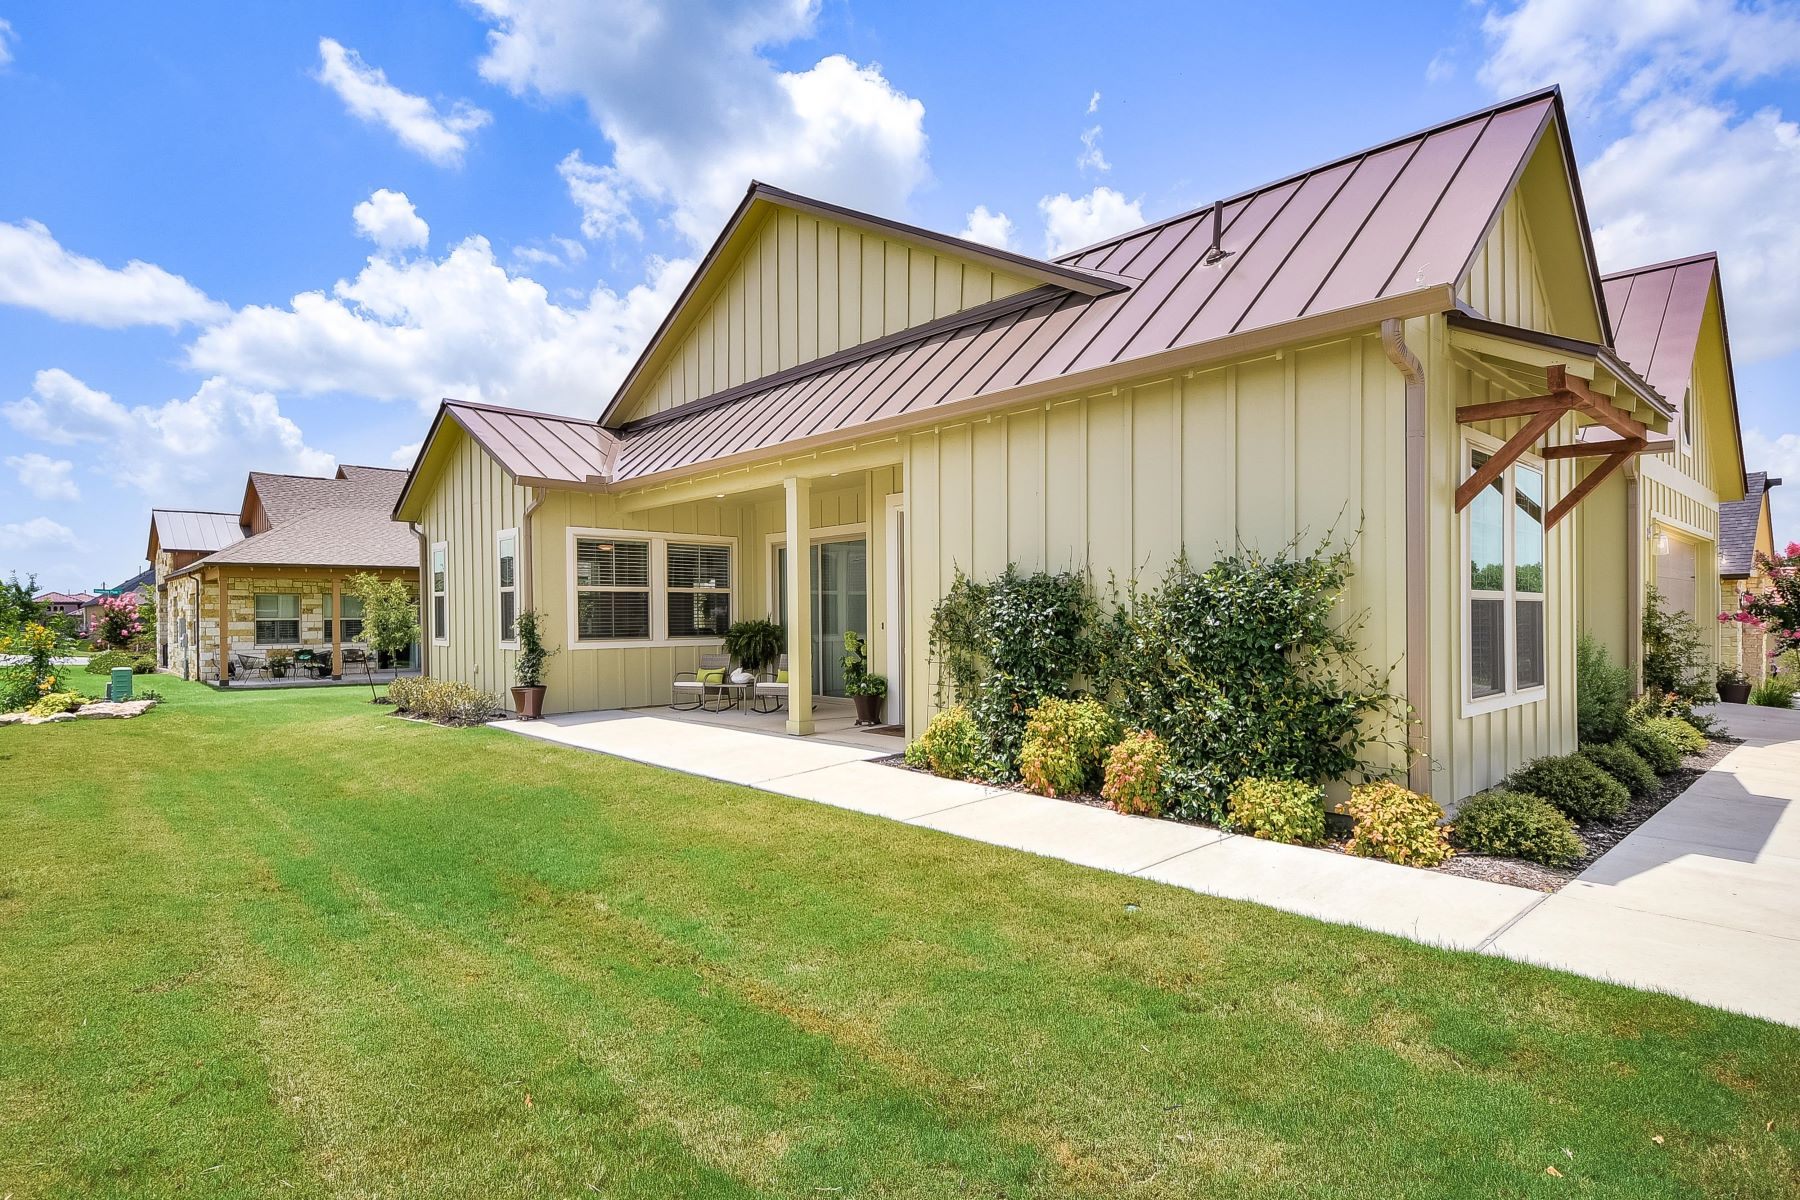 Single Family Homes for Sale at Beautiful 55+ Active Adult Community 120 Learning Elm Dr San Marcos, Texas 78666 United States